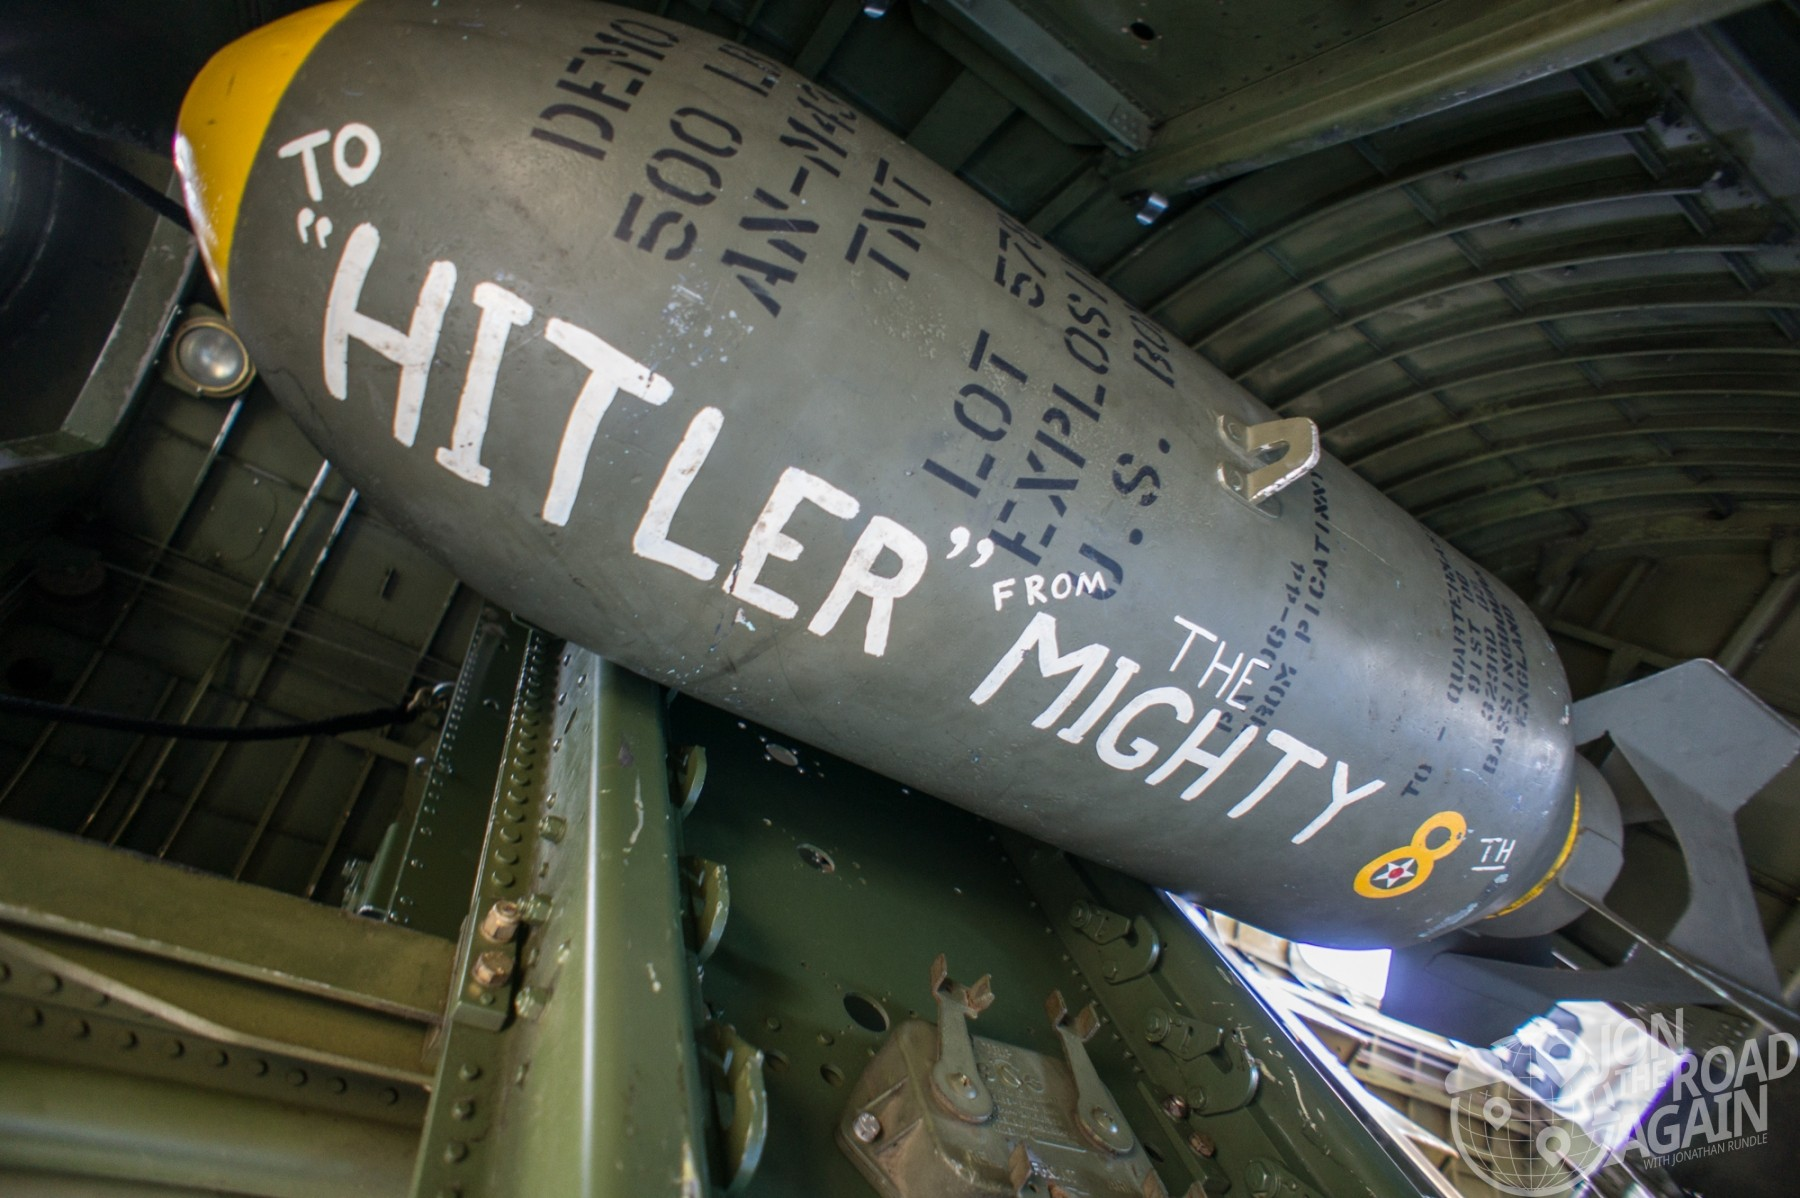 WWII Bomb to hitler from the mighty 8th